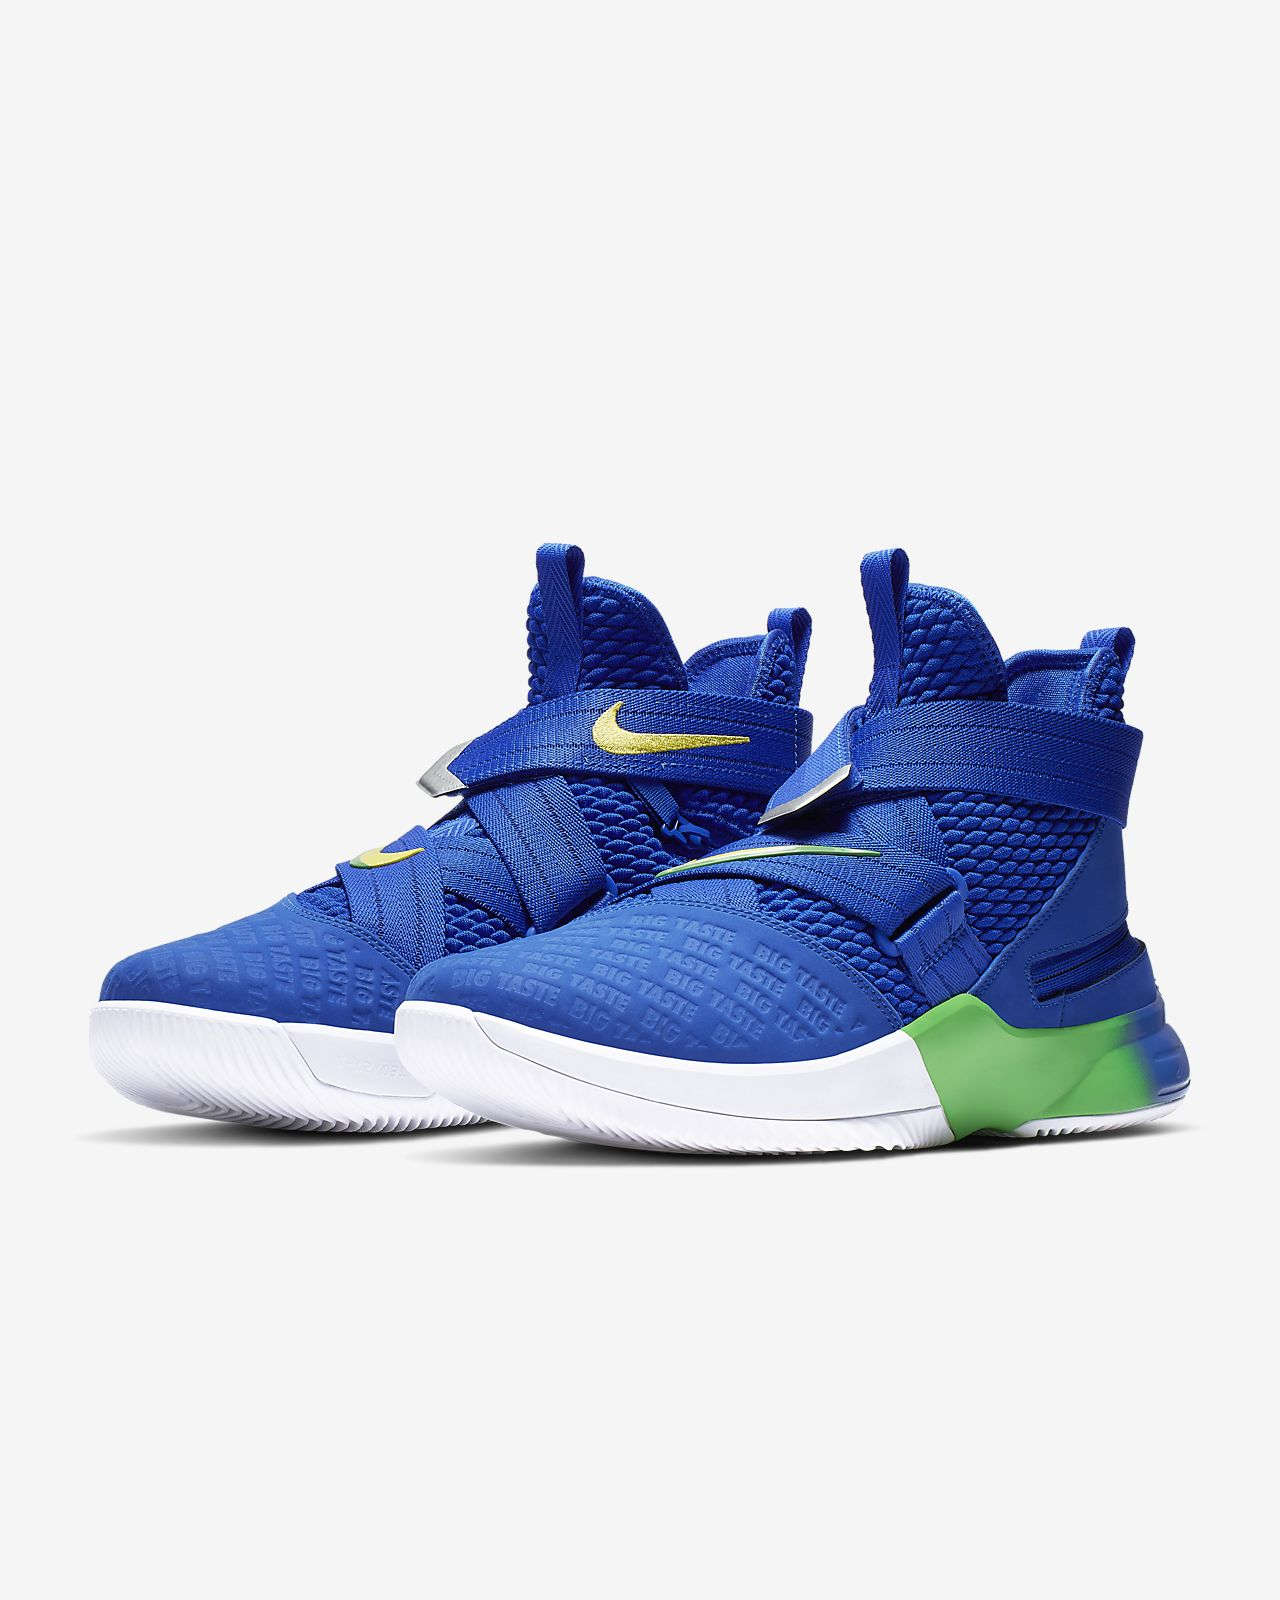 LeBron Soldier 12 FlyEase (Extra Wide) Men's Basketball Shoe